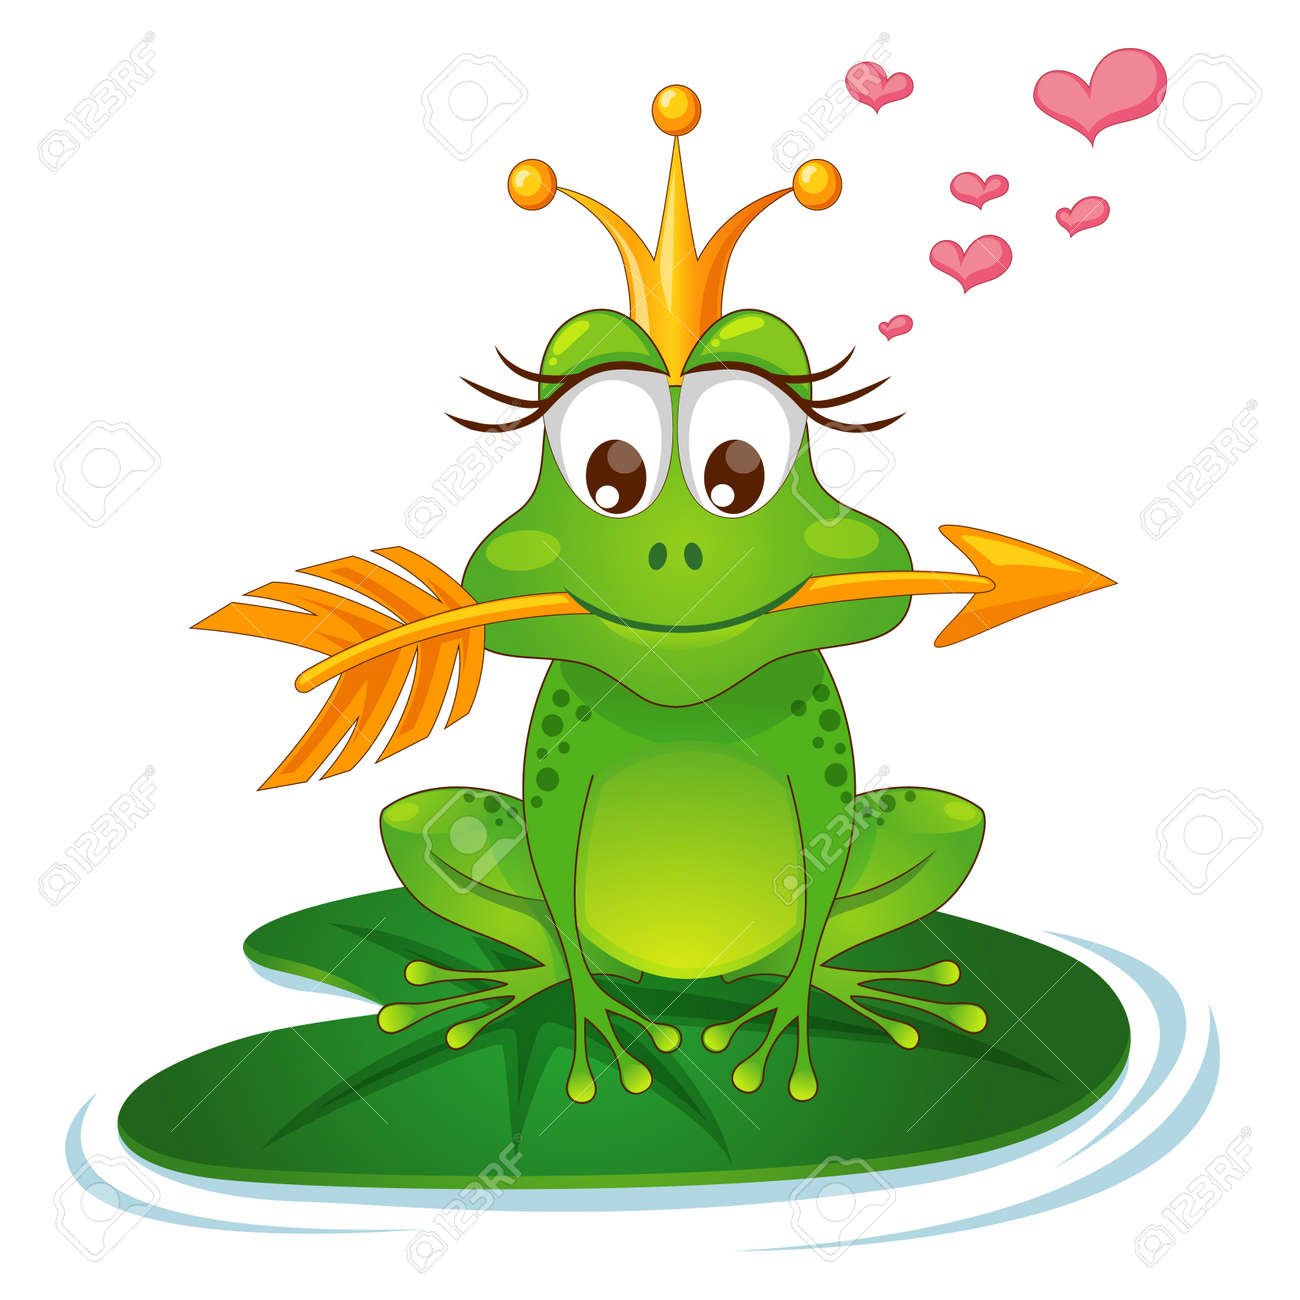 princess frog with a golden arrow royalty free cliparts vectors rh 123rf com Cute Frog Silhouette Vector The Crocodile